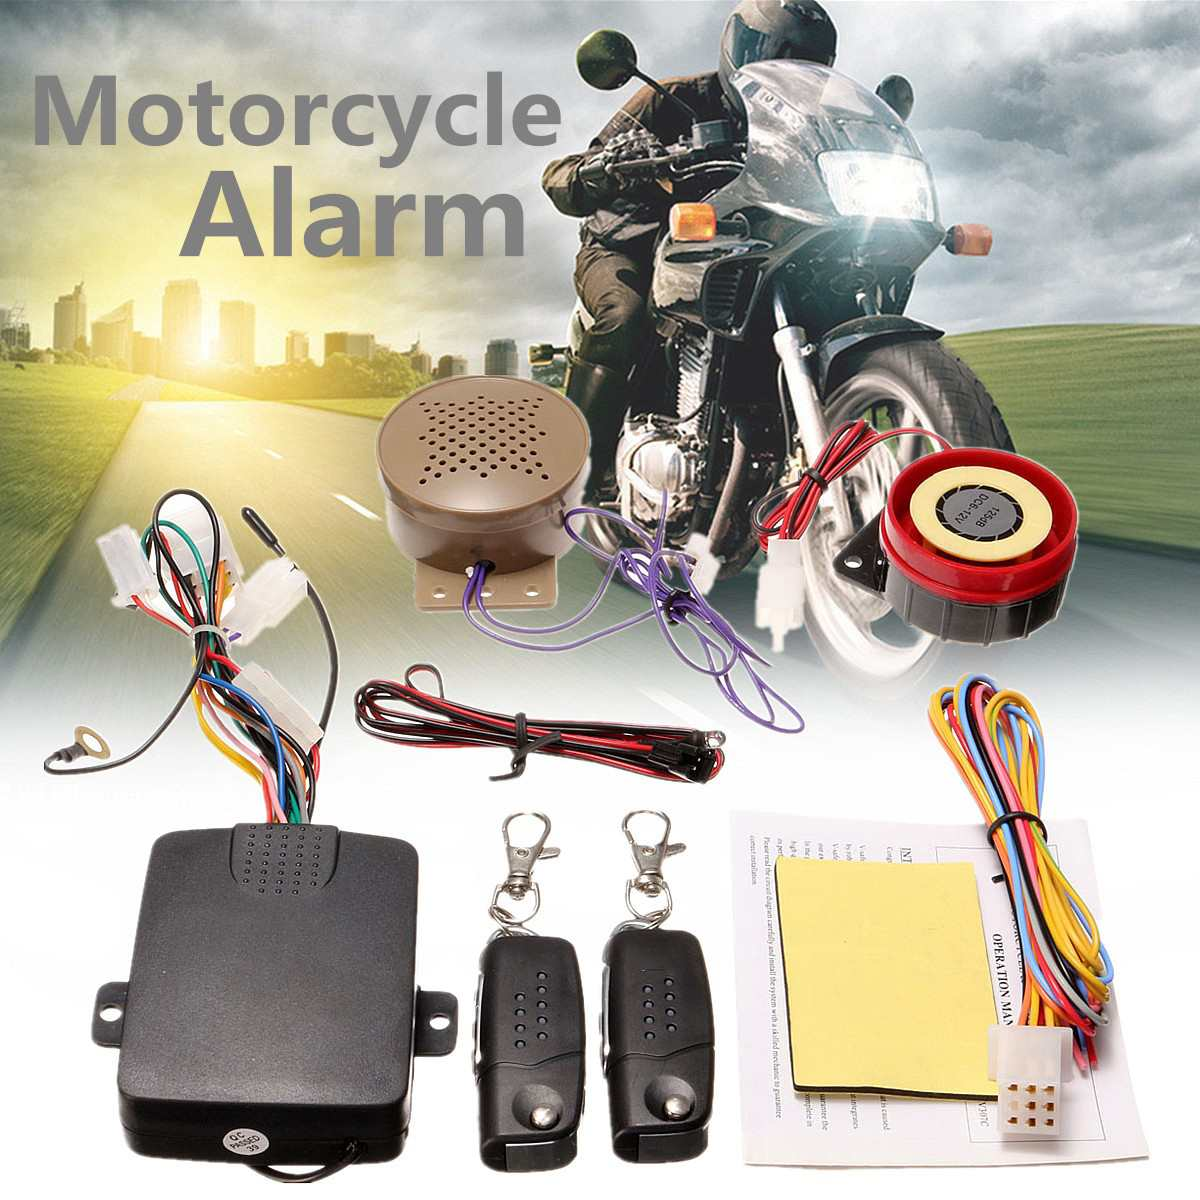 200M 2 Remote Controllers Motorcycle Alarm System Lock Talkin Voice Moto Bike Scooter Anti-theft Security Alarm Horn Speaker